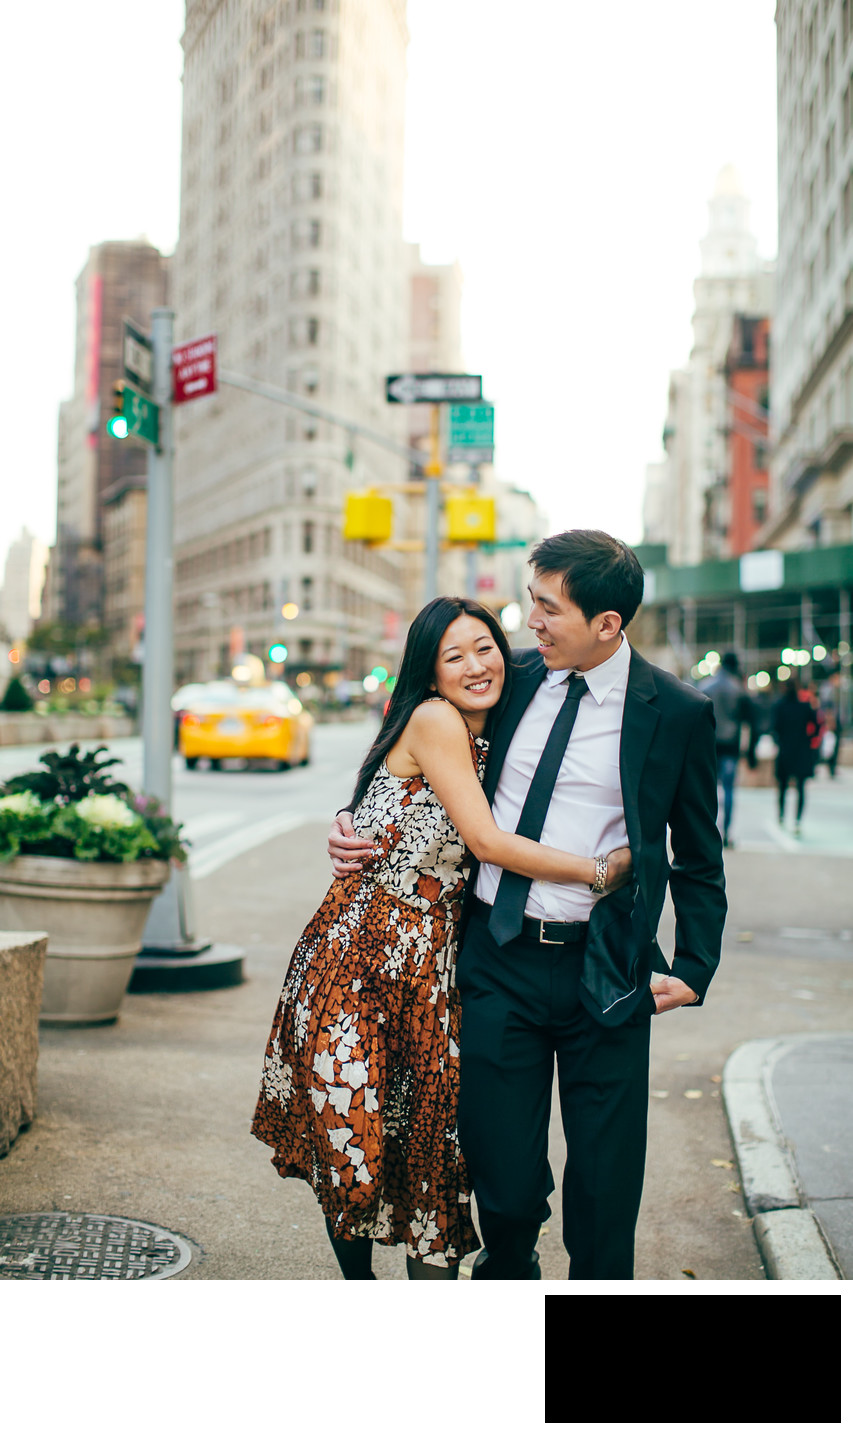 Manhattan wedding photos by seangallery